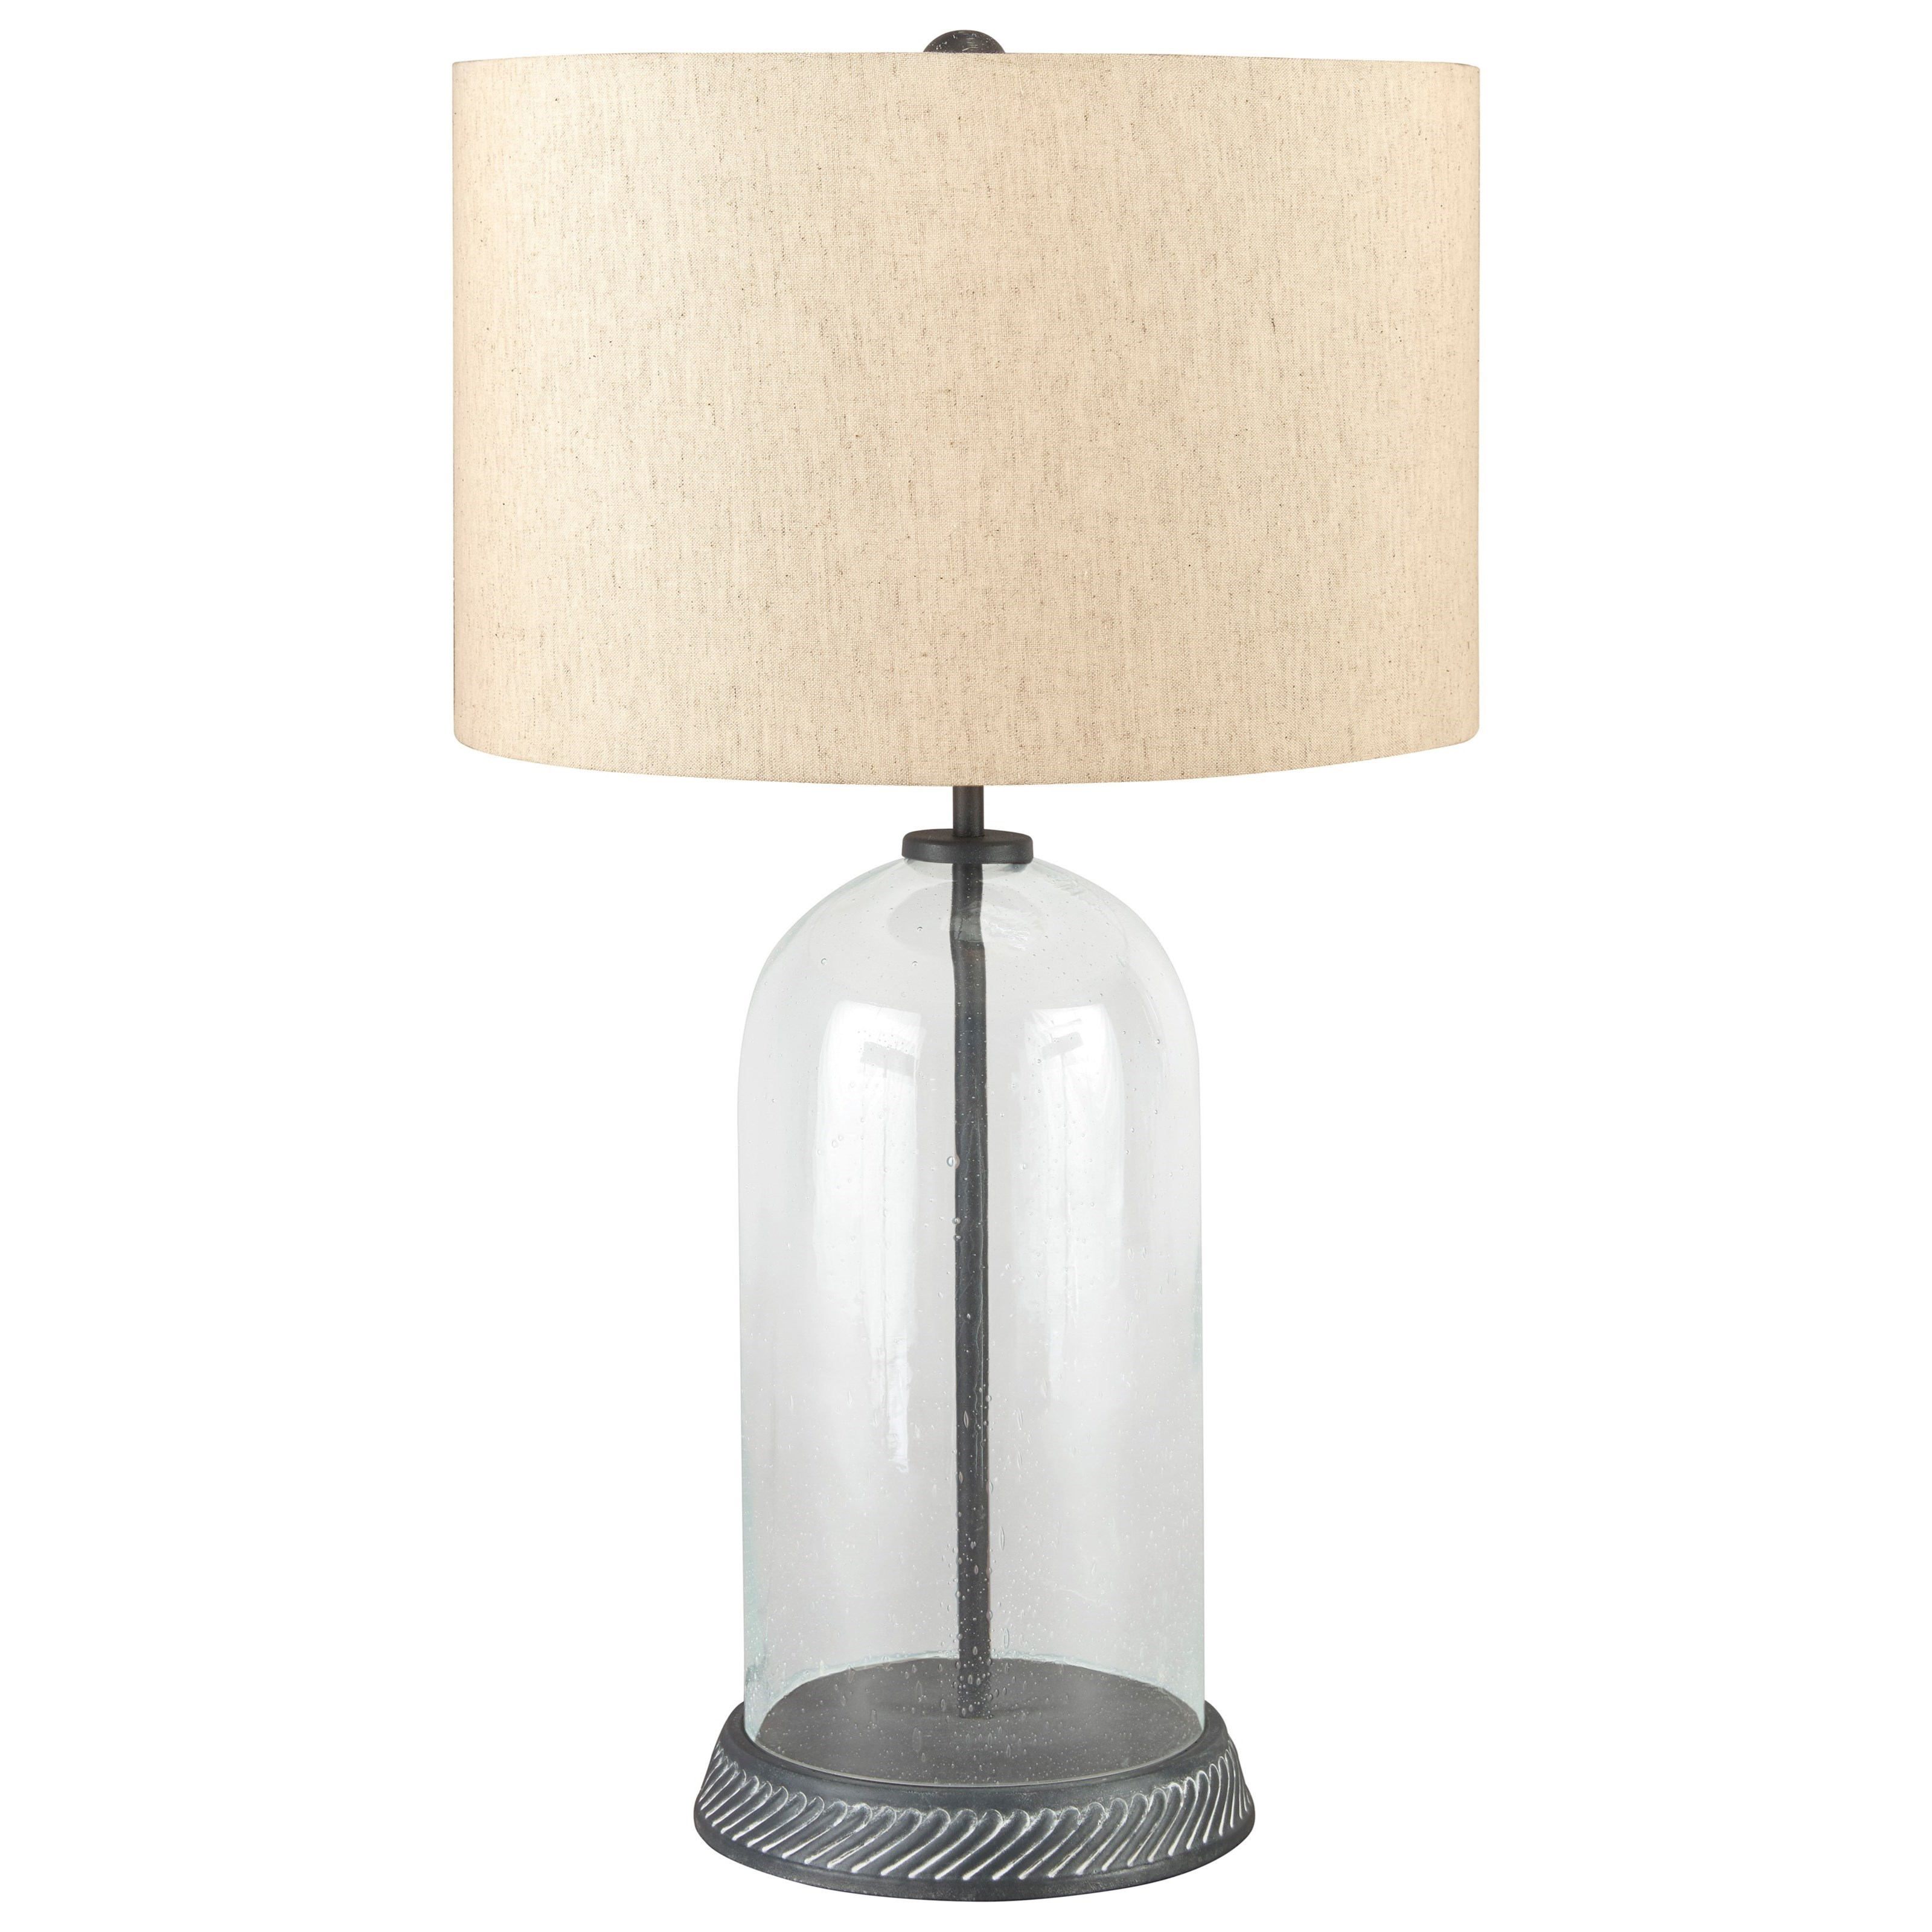 Lamps - Casual Manelin Clear/Gray Glass Table Lamp by Signature Design by Ashley at Northeast Factory Direct